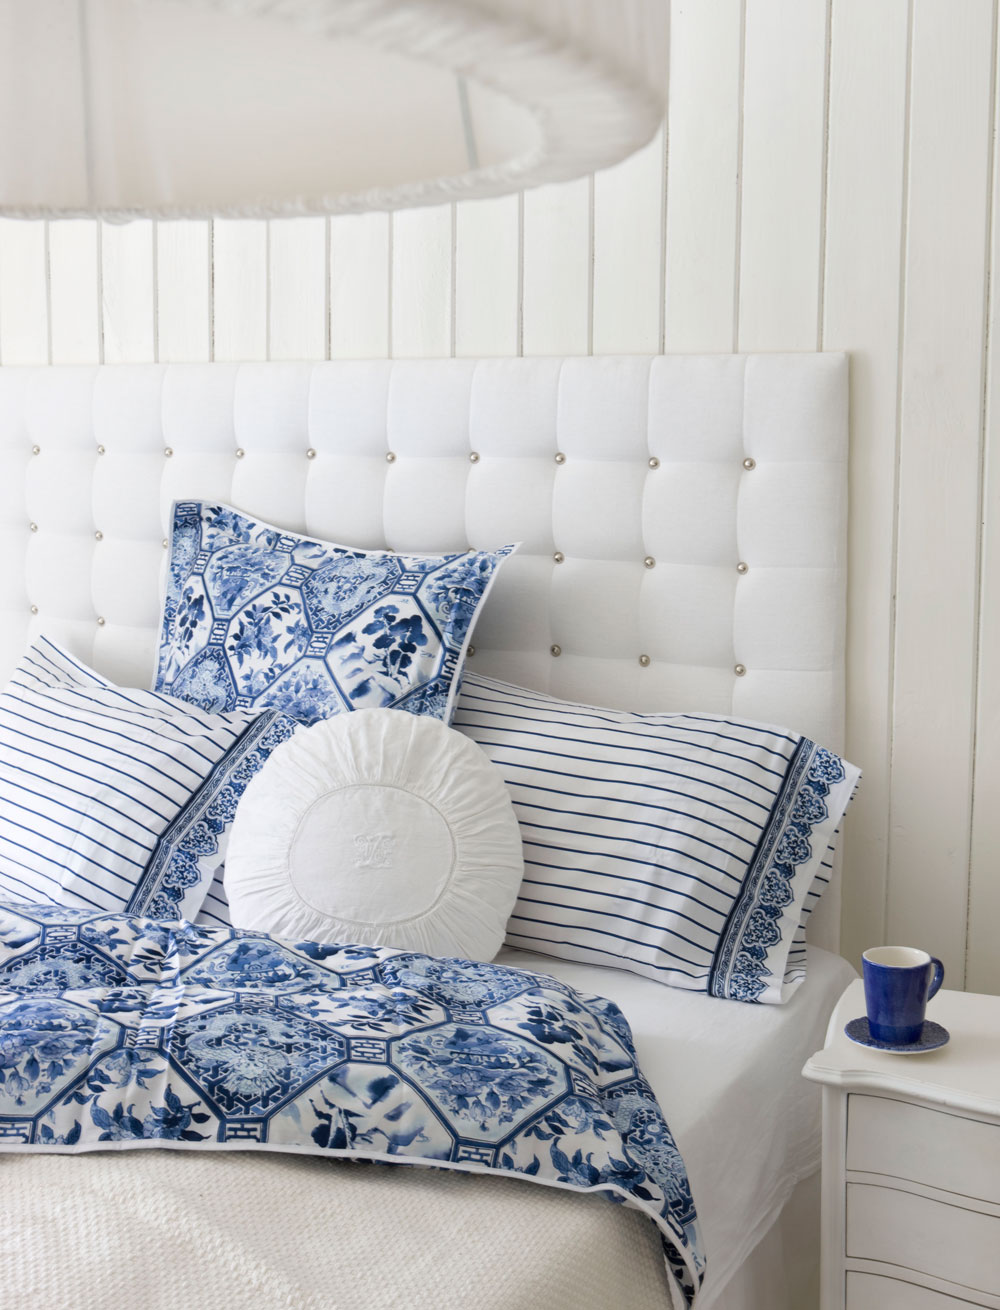 China Blue 2015 Trends